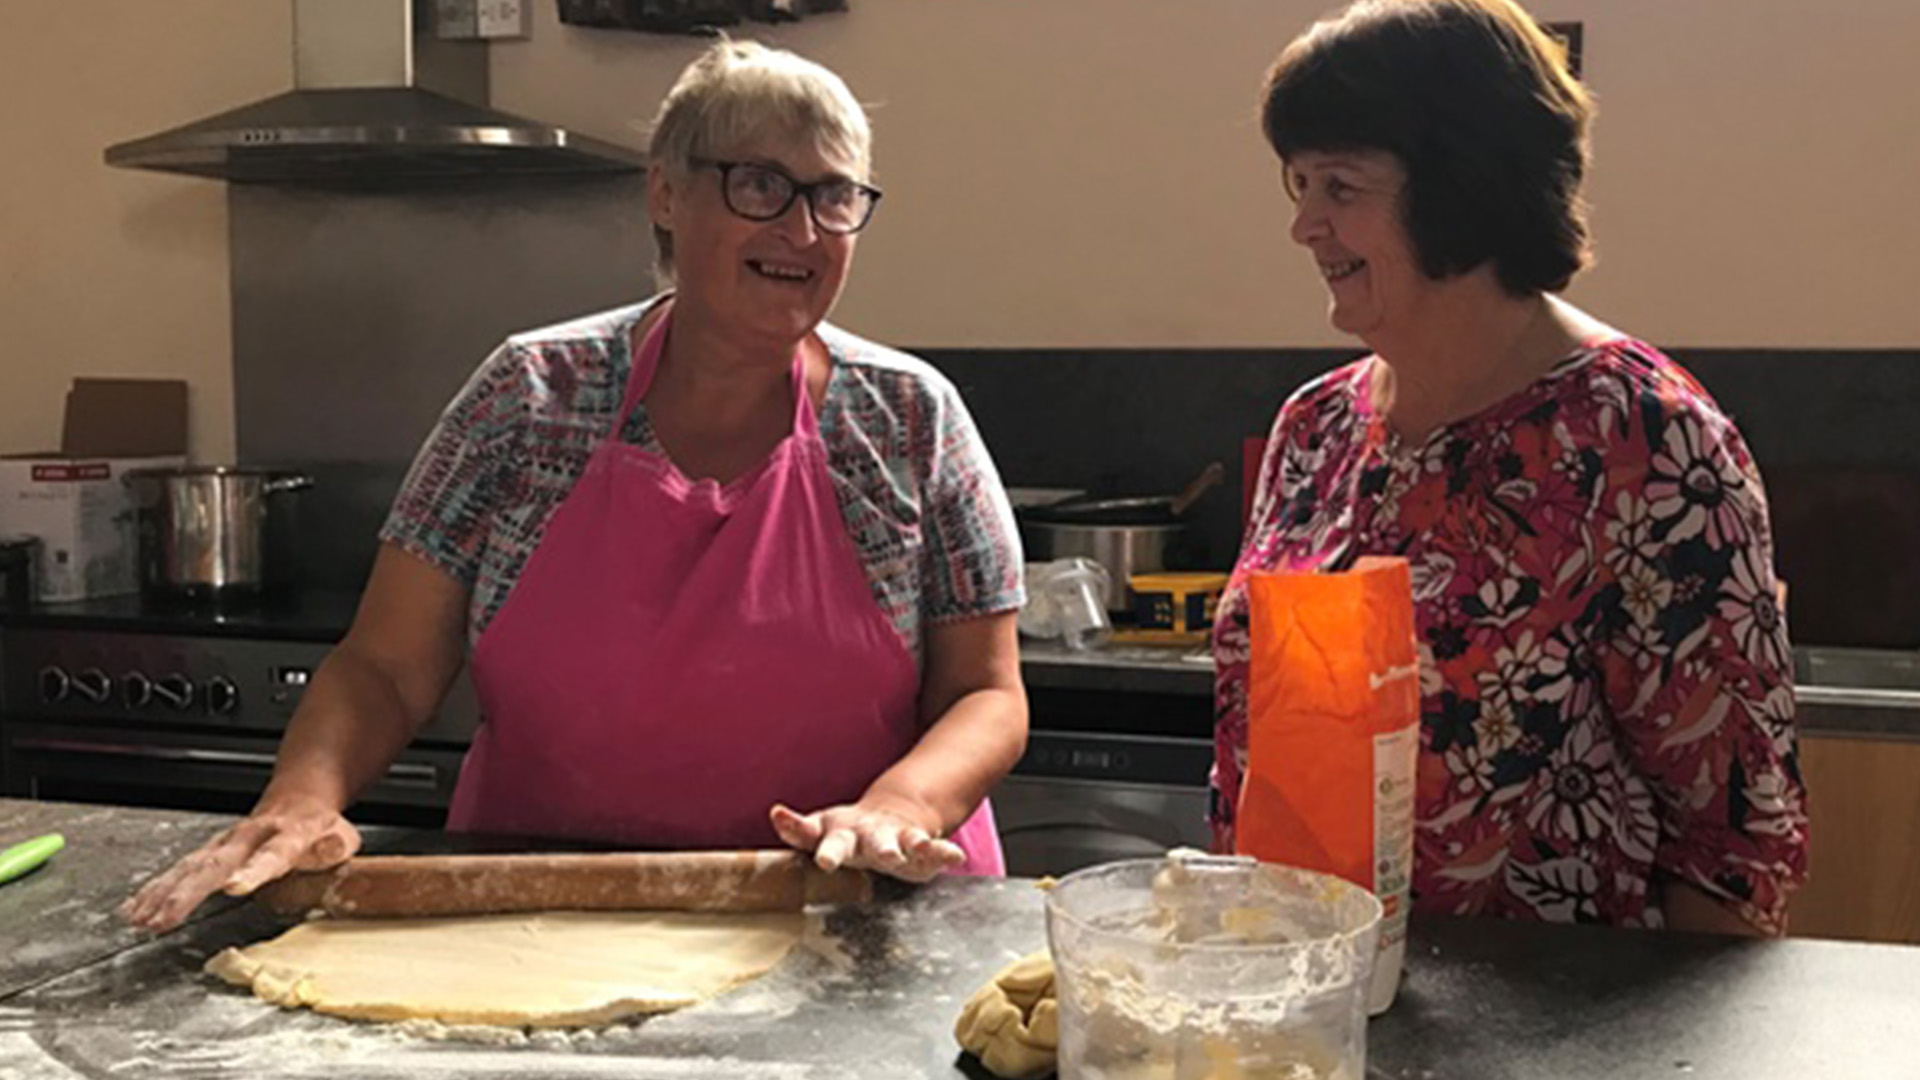 Fiona Blackburn, deputy chair Wragby ChEF preparing pastry with Cllr Mrs Patricia Bradwell